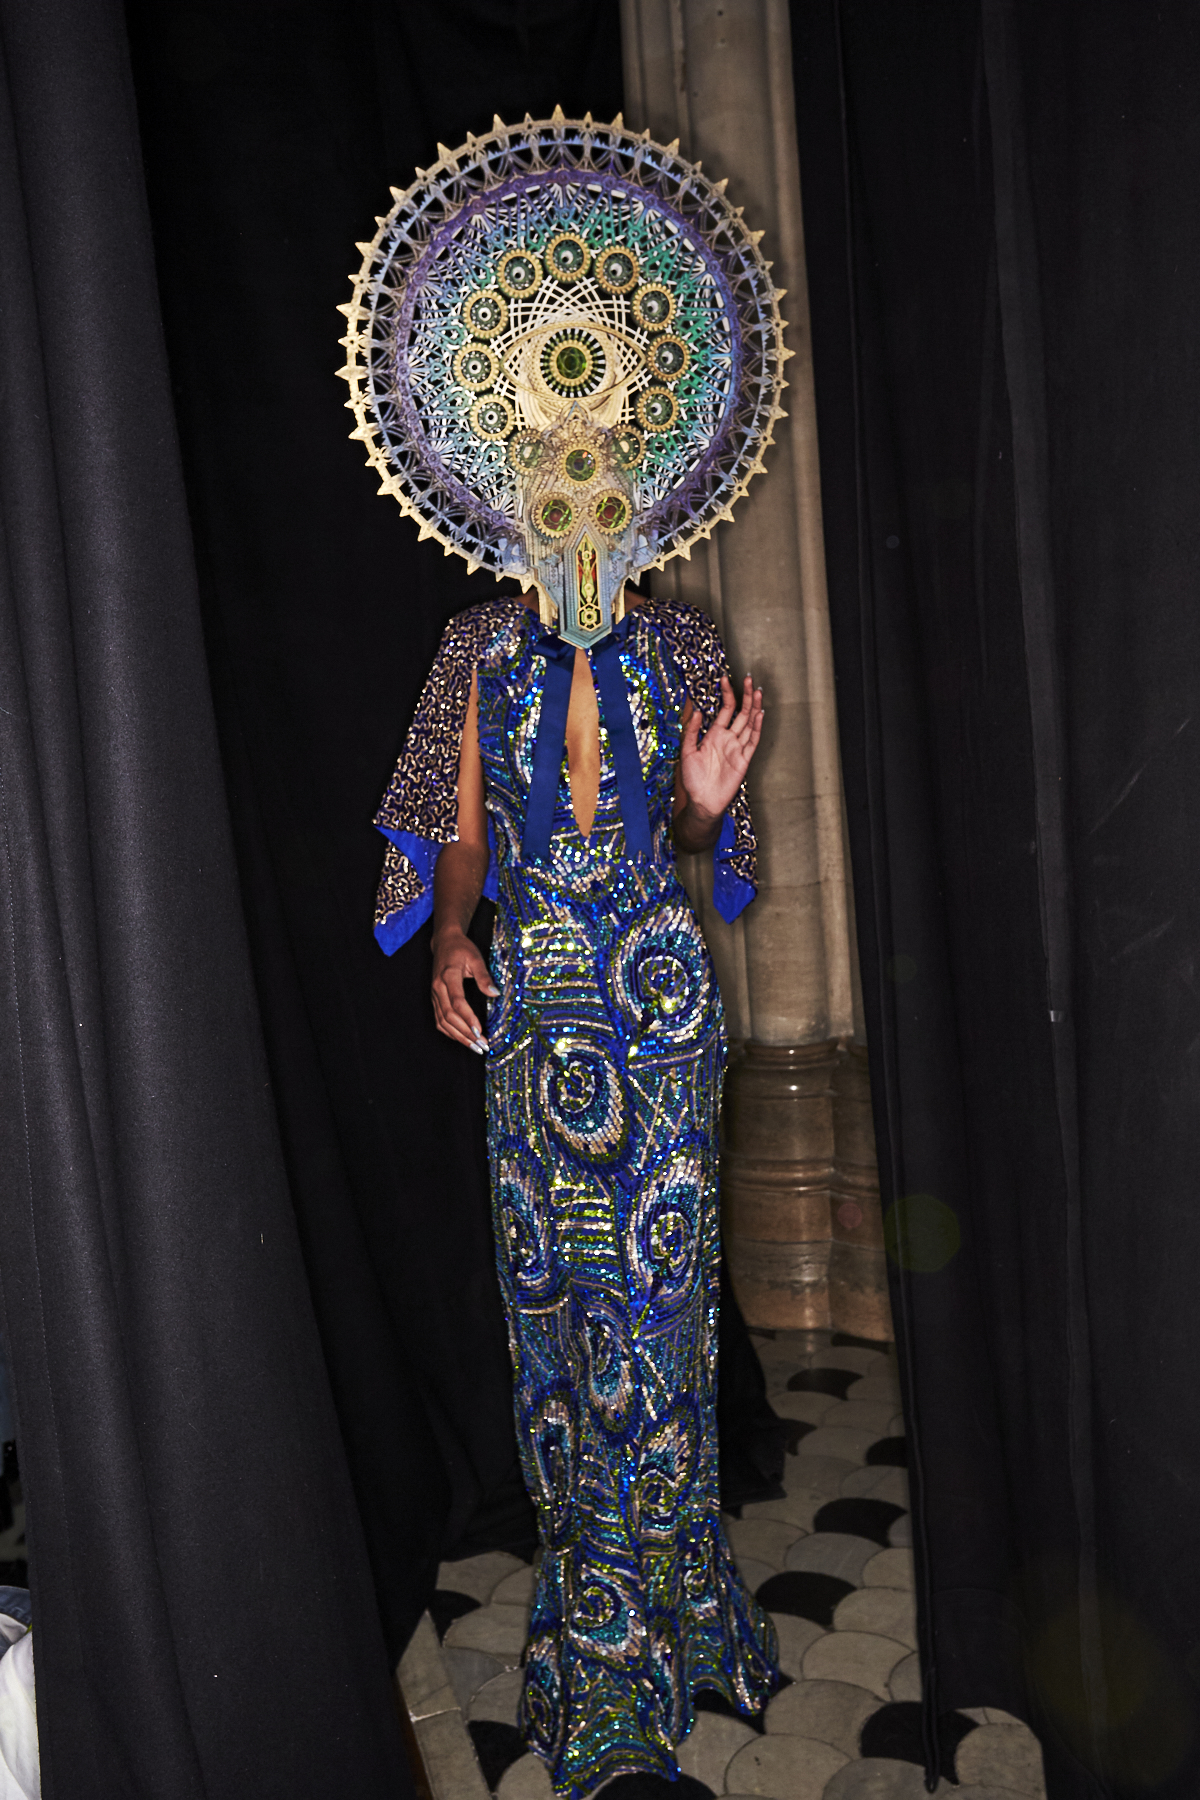 Manish Arora AW19 Fashion Show Paris Backstage